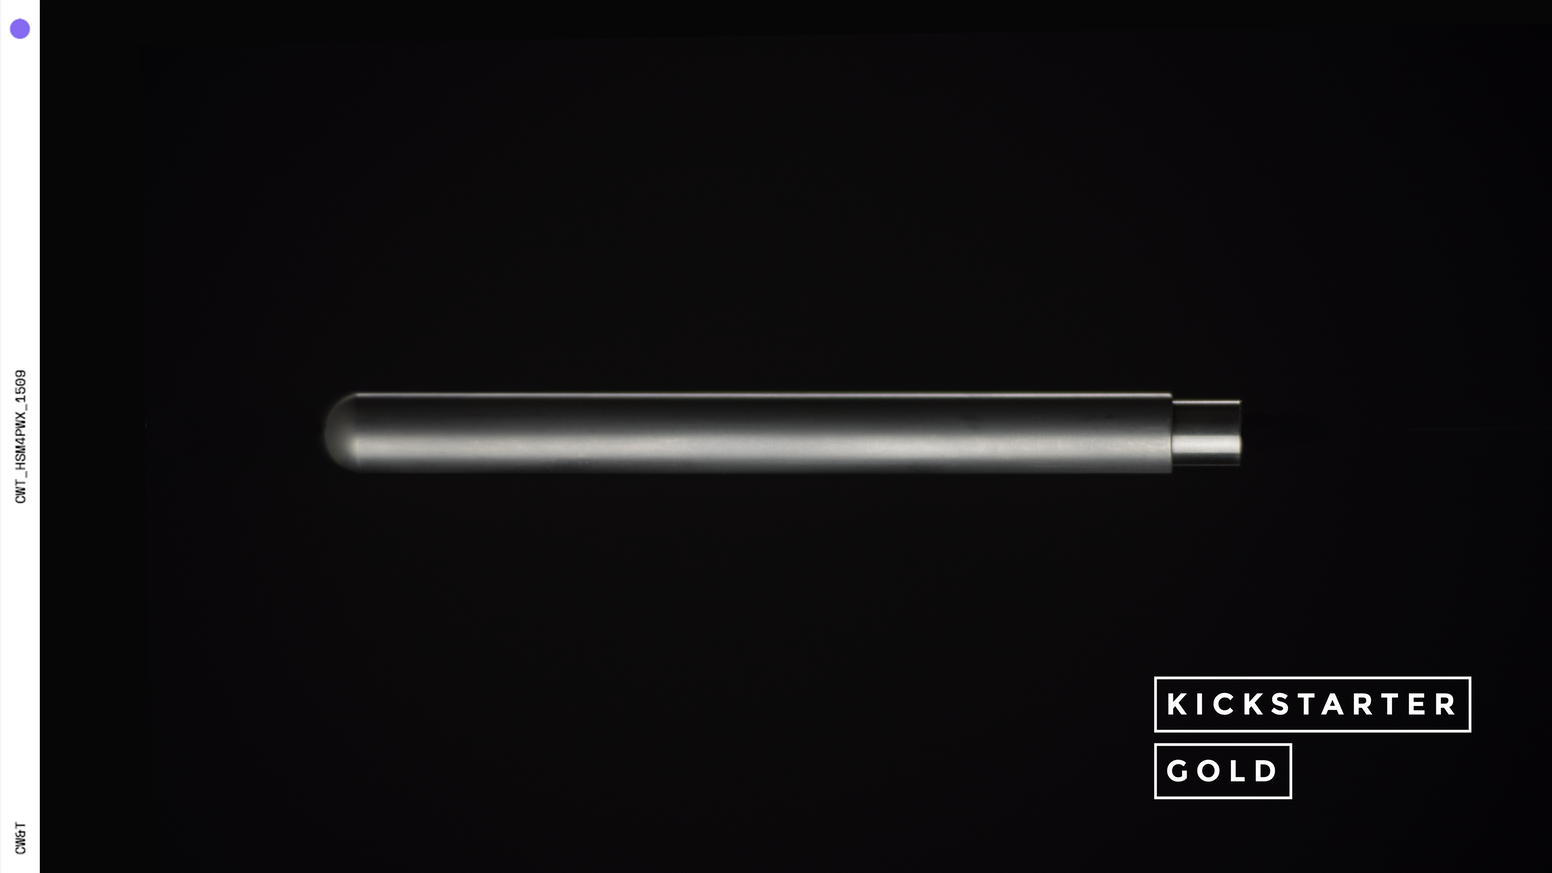 An over-engineered Titanium pen and sleeve. Designed and built to last generations.